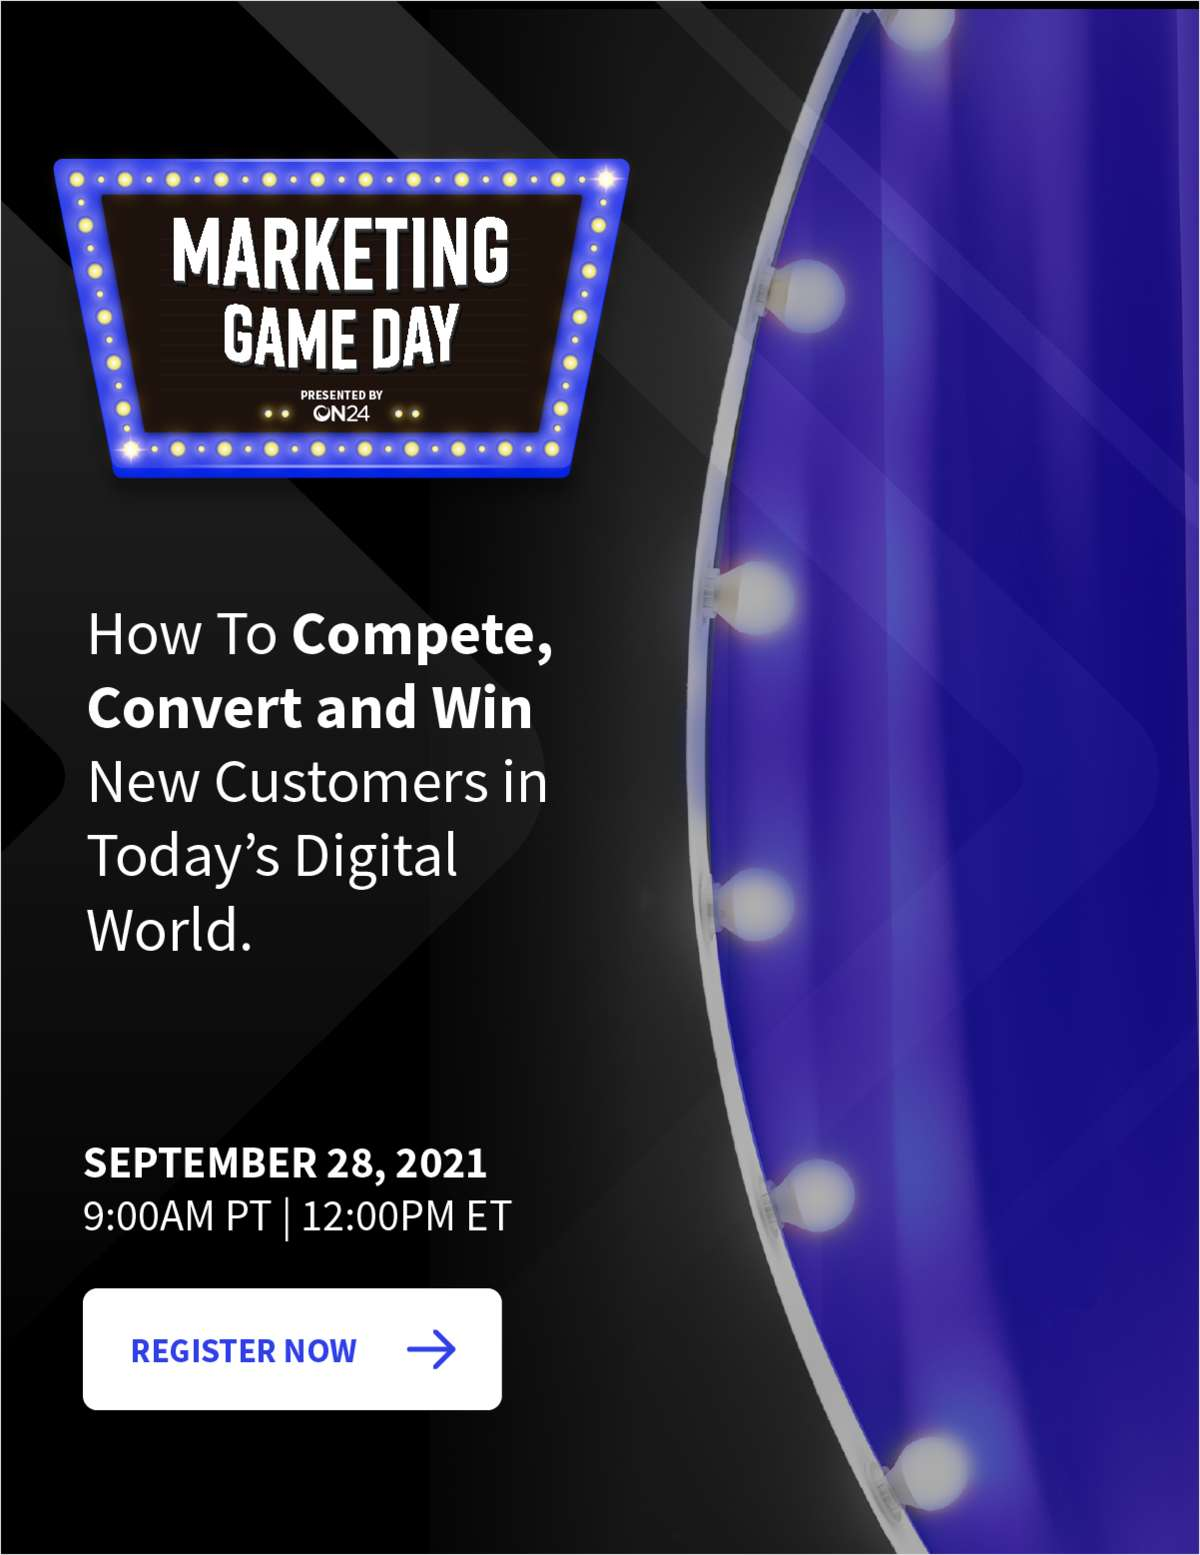 Marketing Game Day: How to Compete, Convert and Win New Customers in Today's Digital World